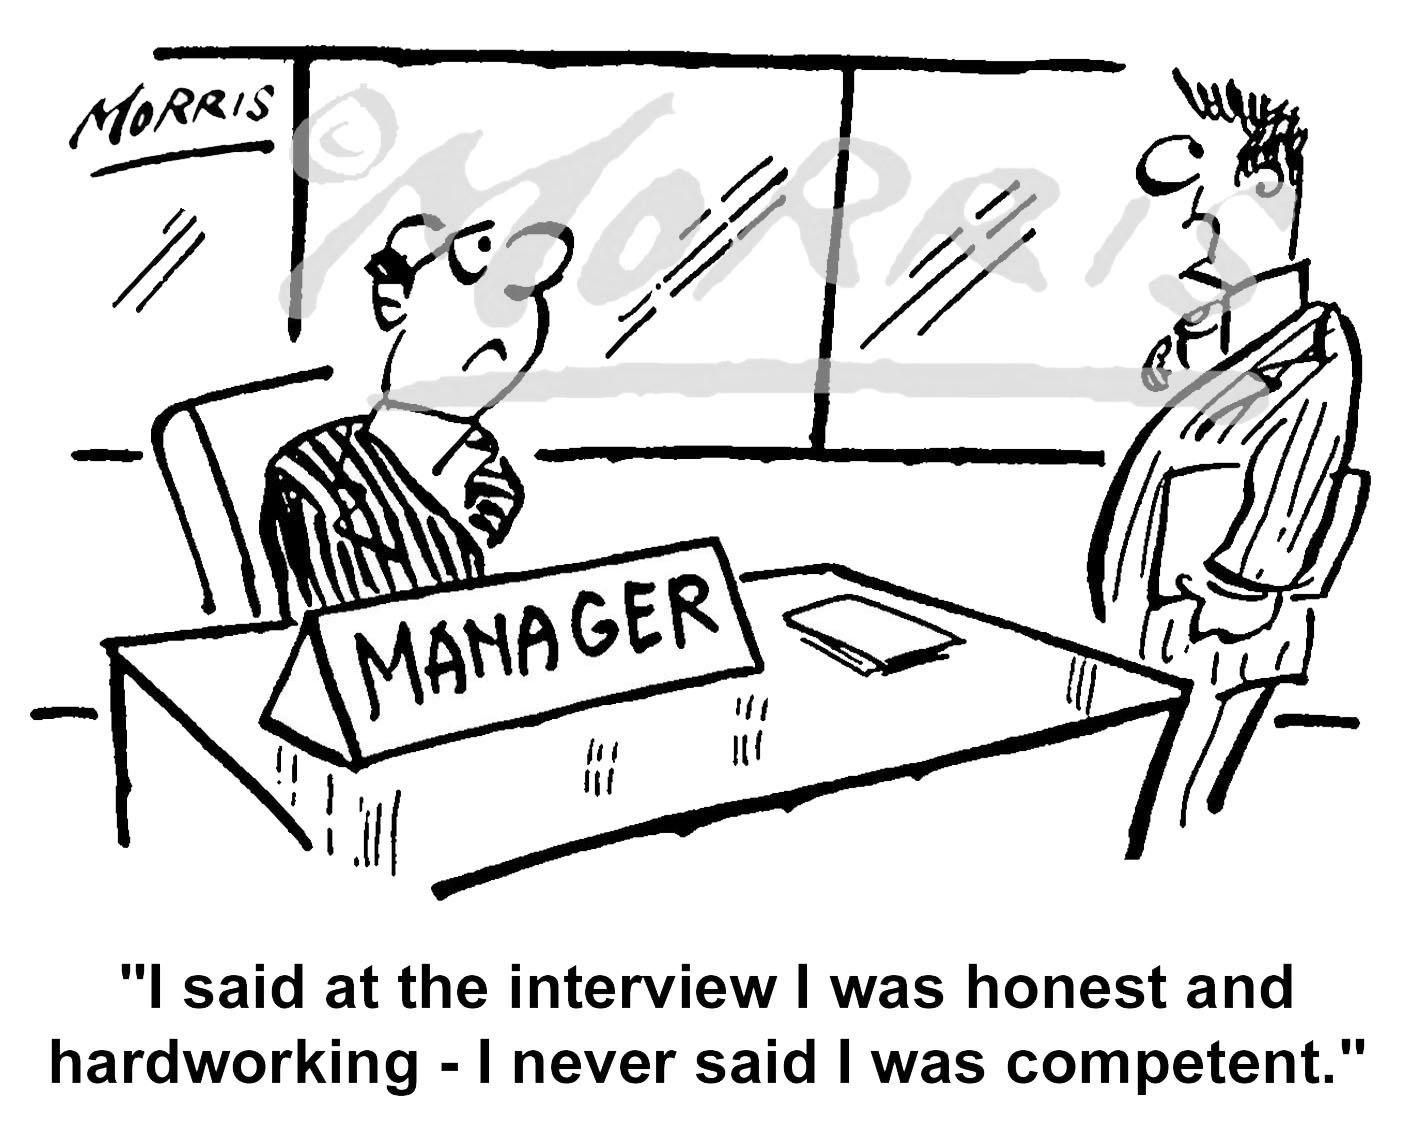 Manager employee interview cartoon Ref: 0676bw